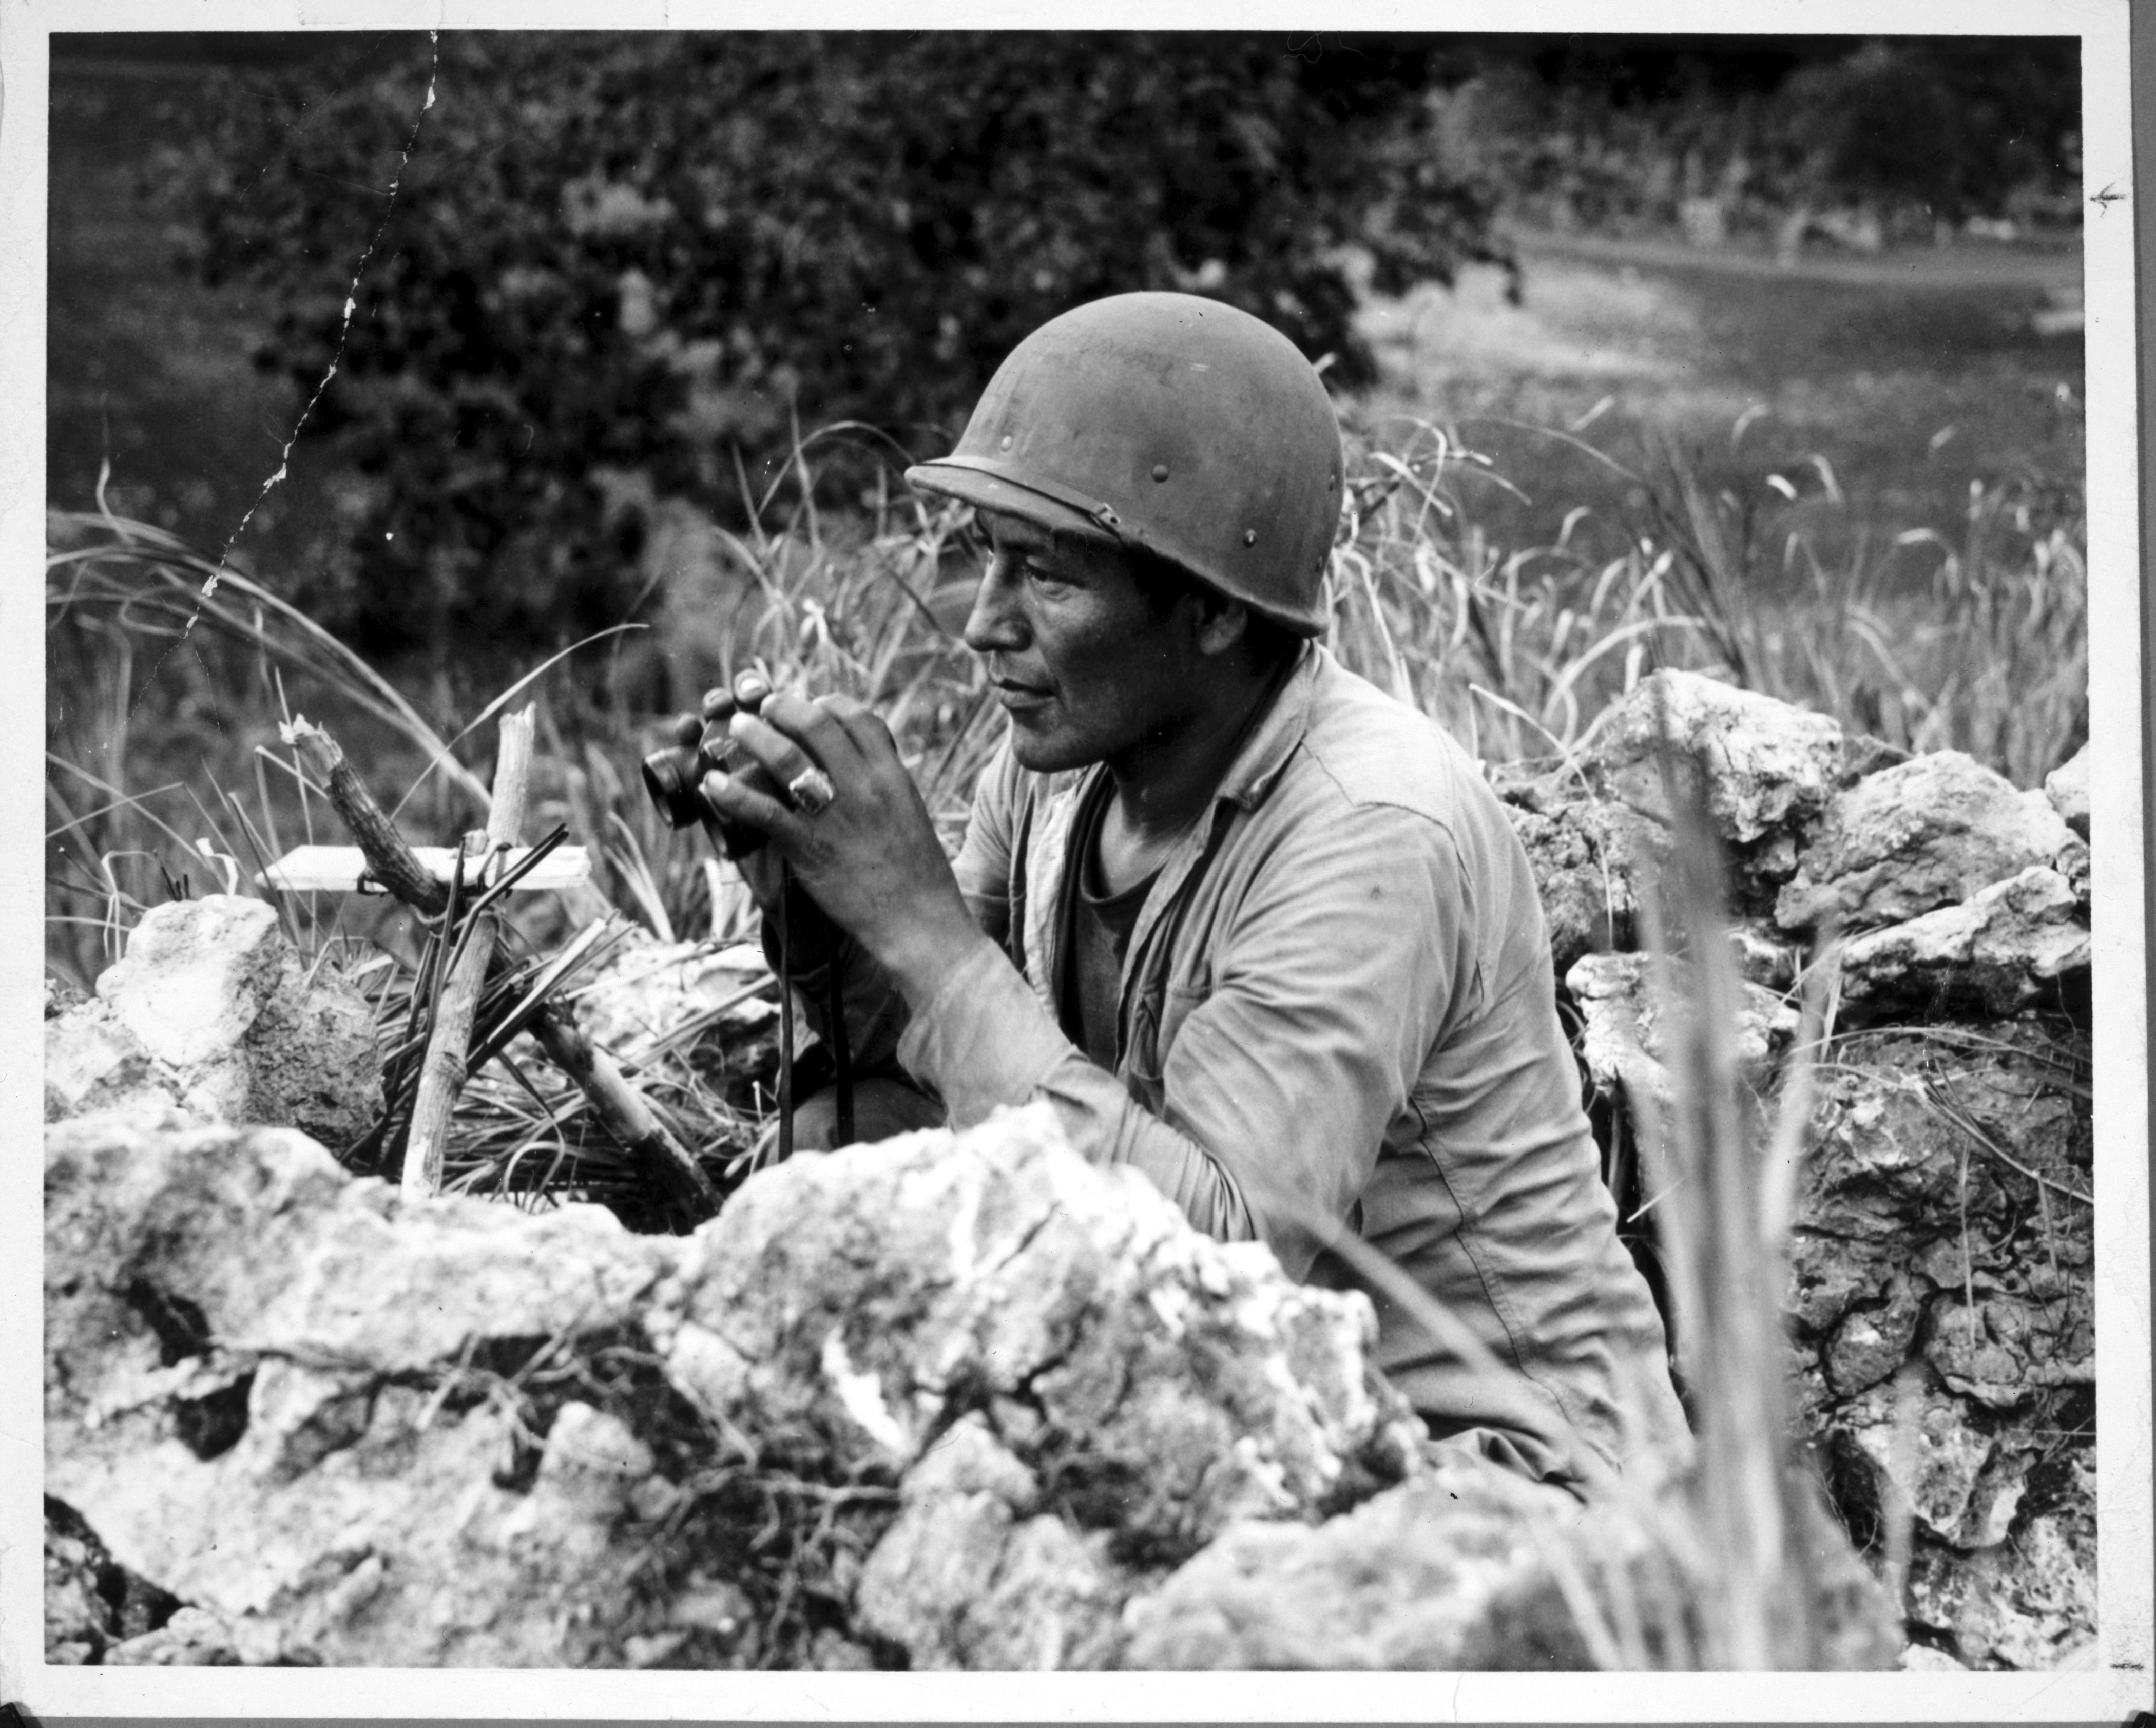 Navajo Code Talker Carl Gorman tracks enemy movements on the island of Saipan in the Marianas, June 27, 1944, US National Archives.